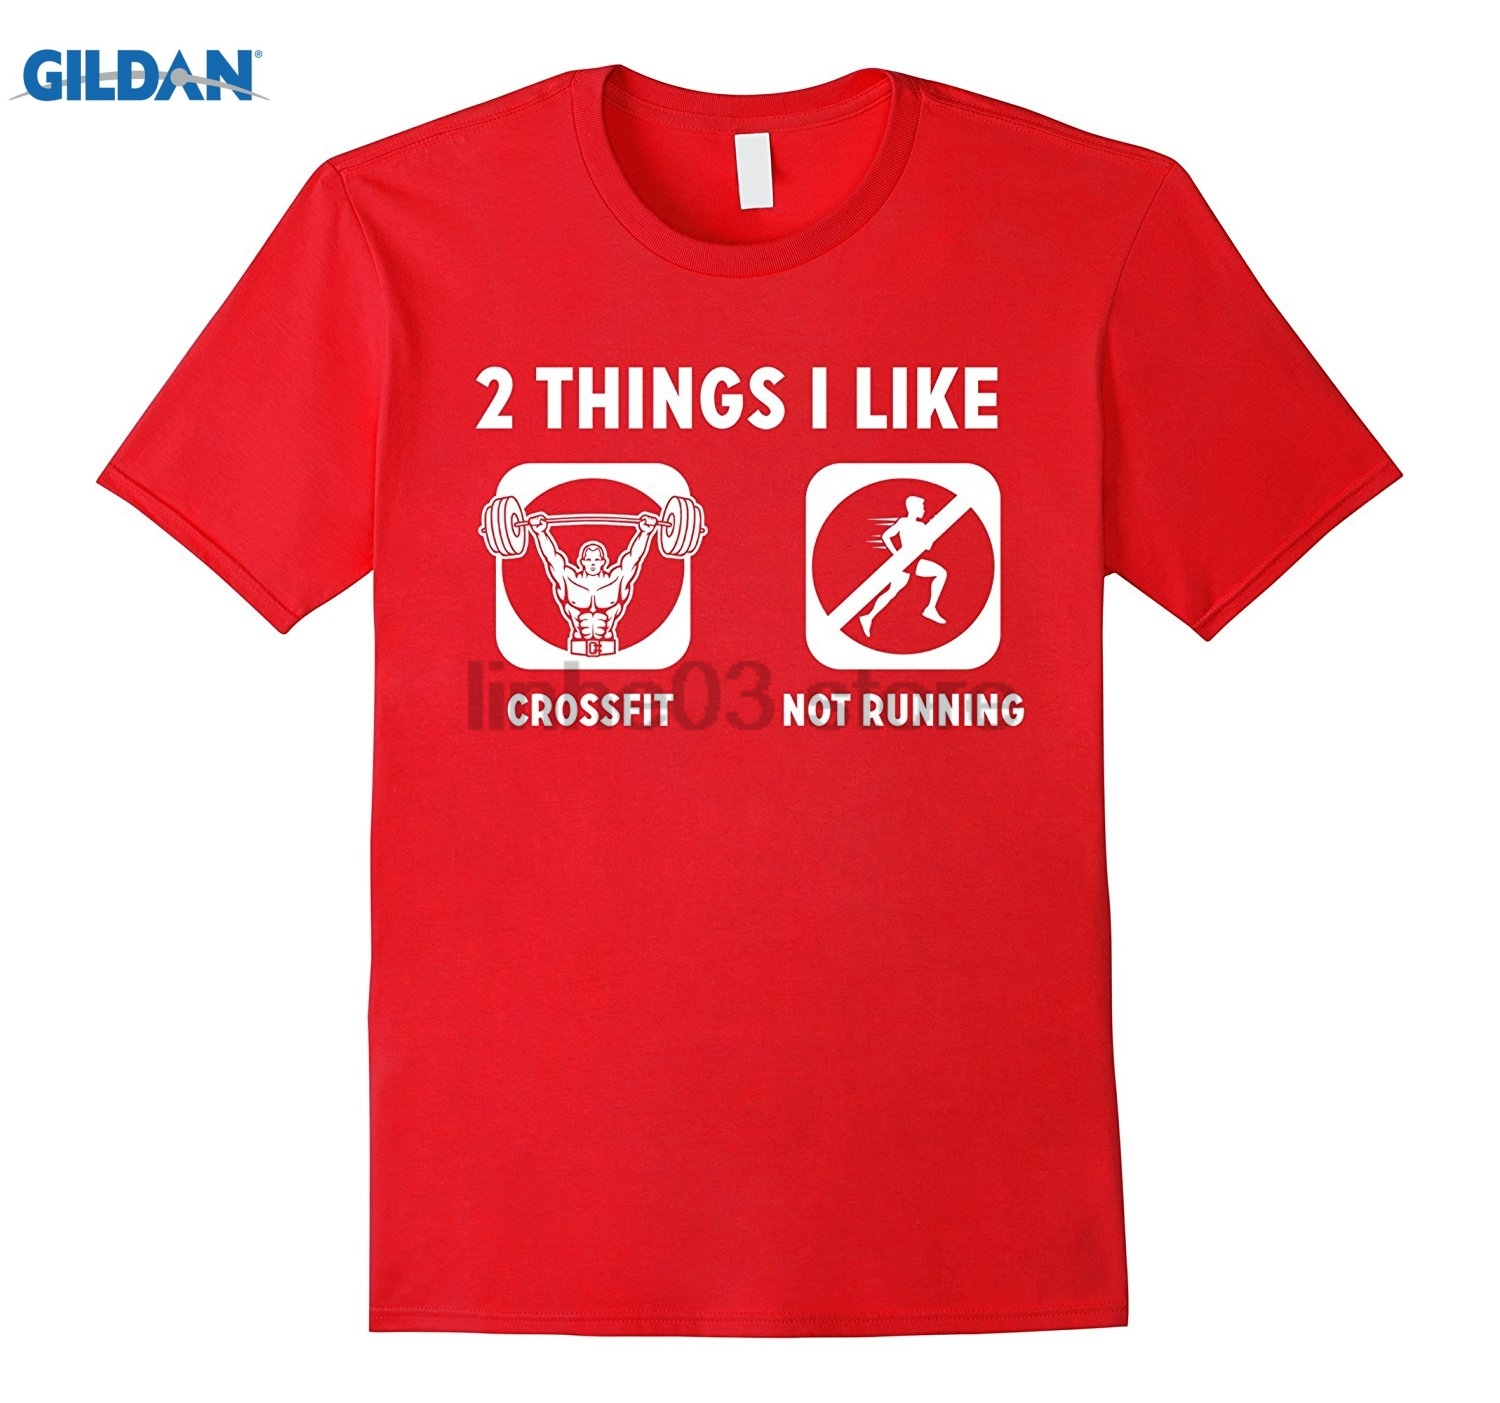 GILDAN 2 Things I Like Cross Fit Not Funny Fitness TShirt Hot Womens T-shirt Dress female T-shirt